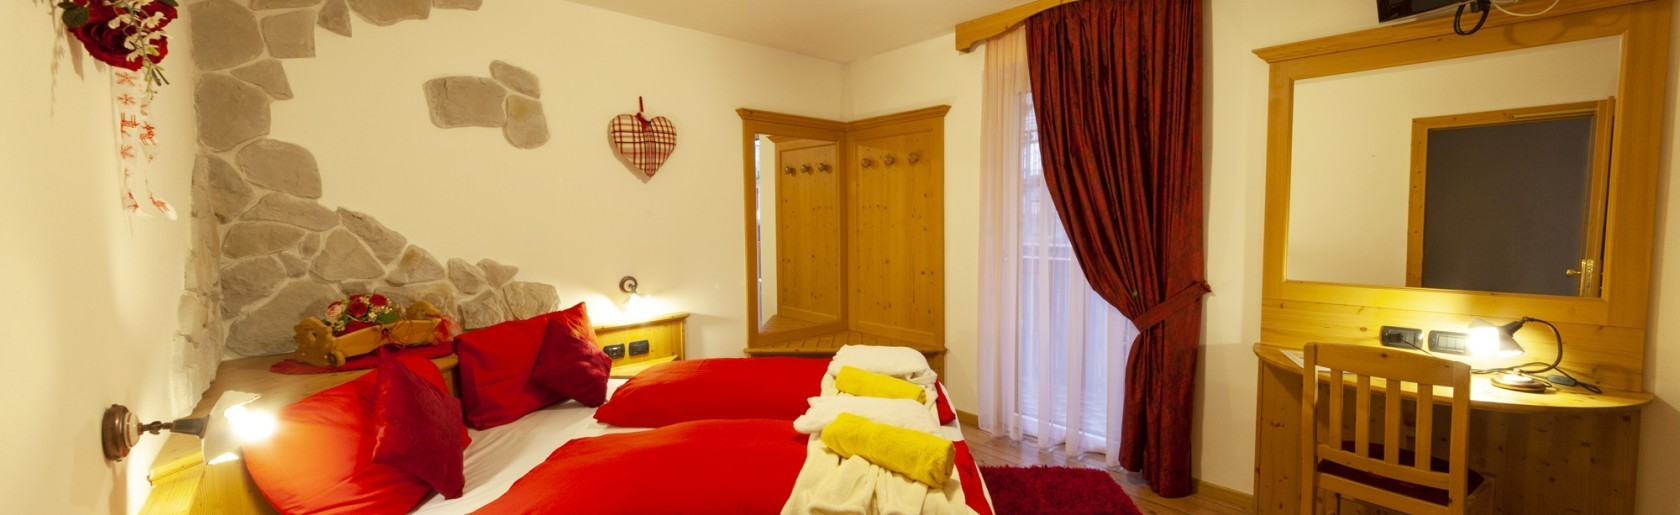 Romantic Room Hotel Tirol